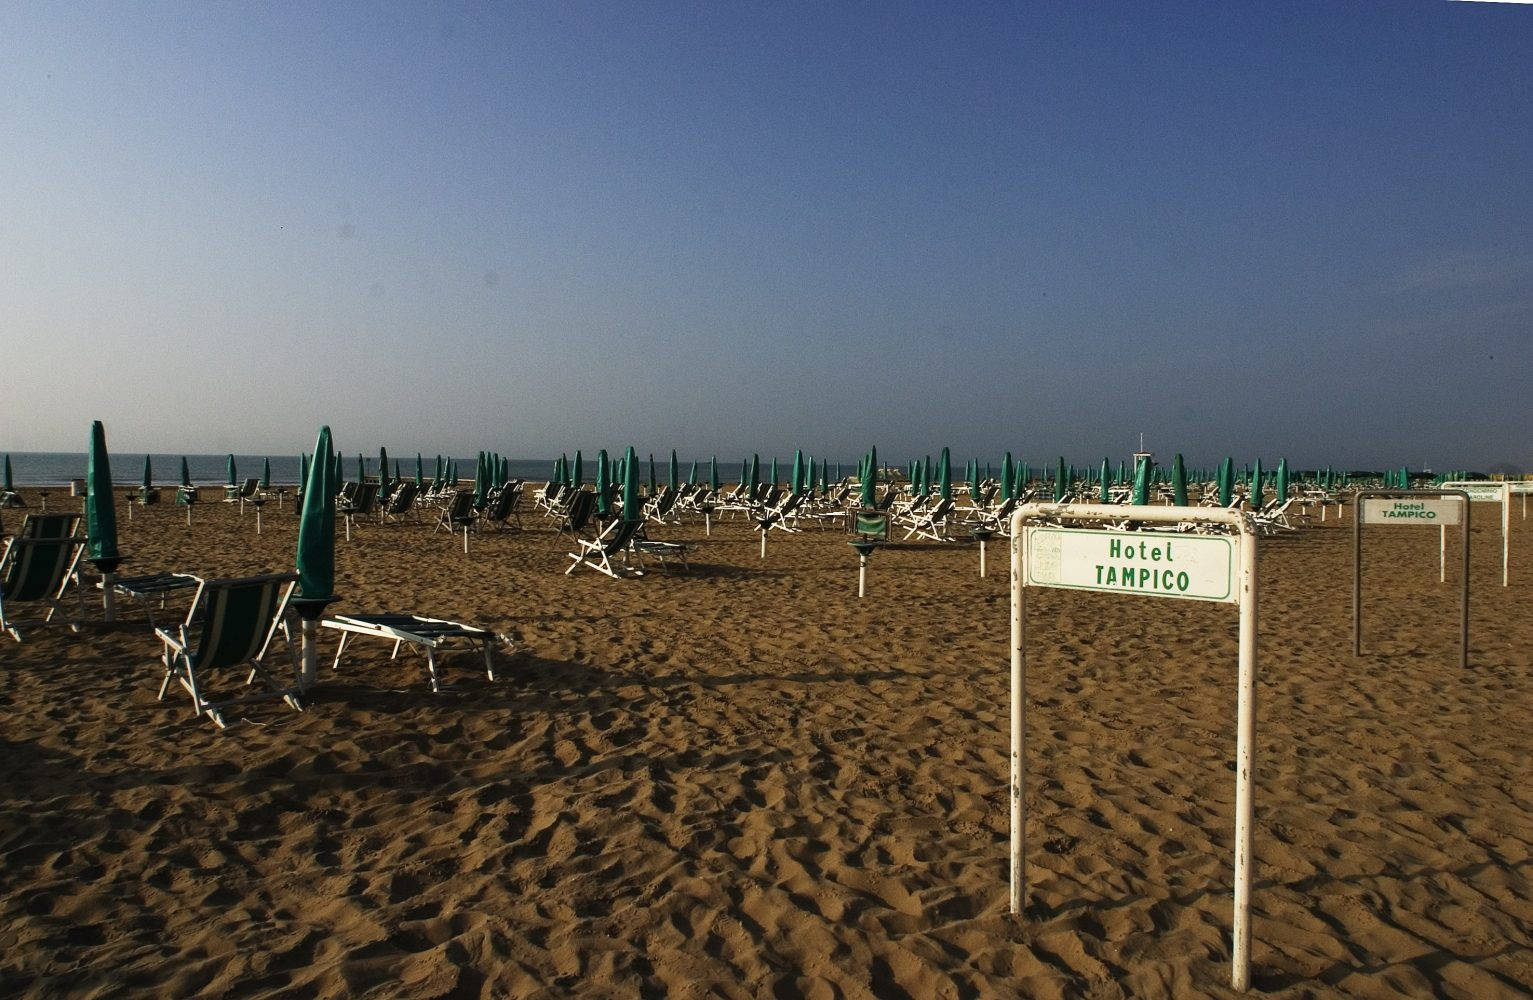 http://www.hoteltampico.it/wp-content/uploads/2016/11/spiaggia_01.jpg